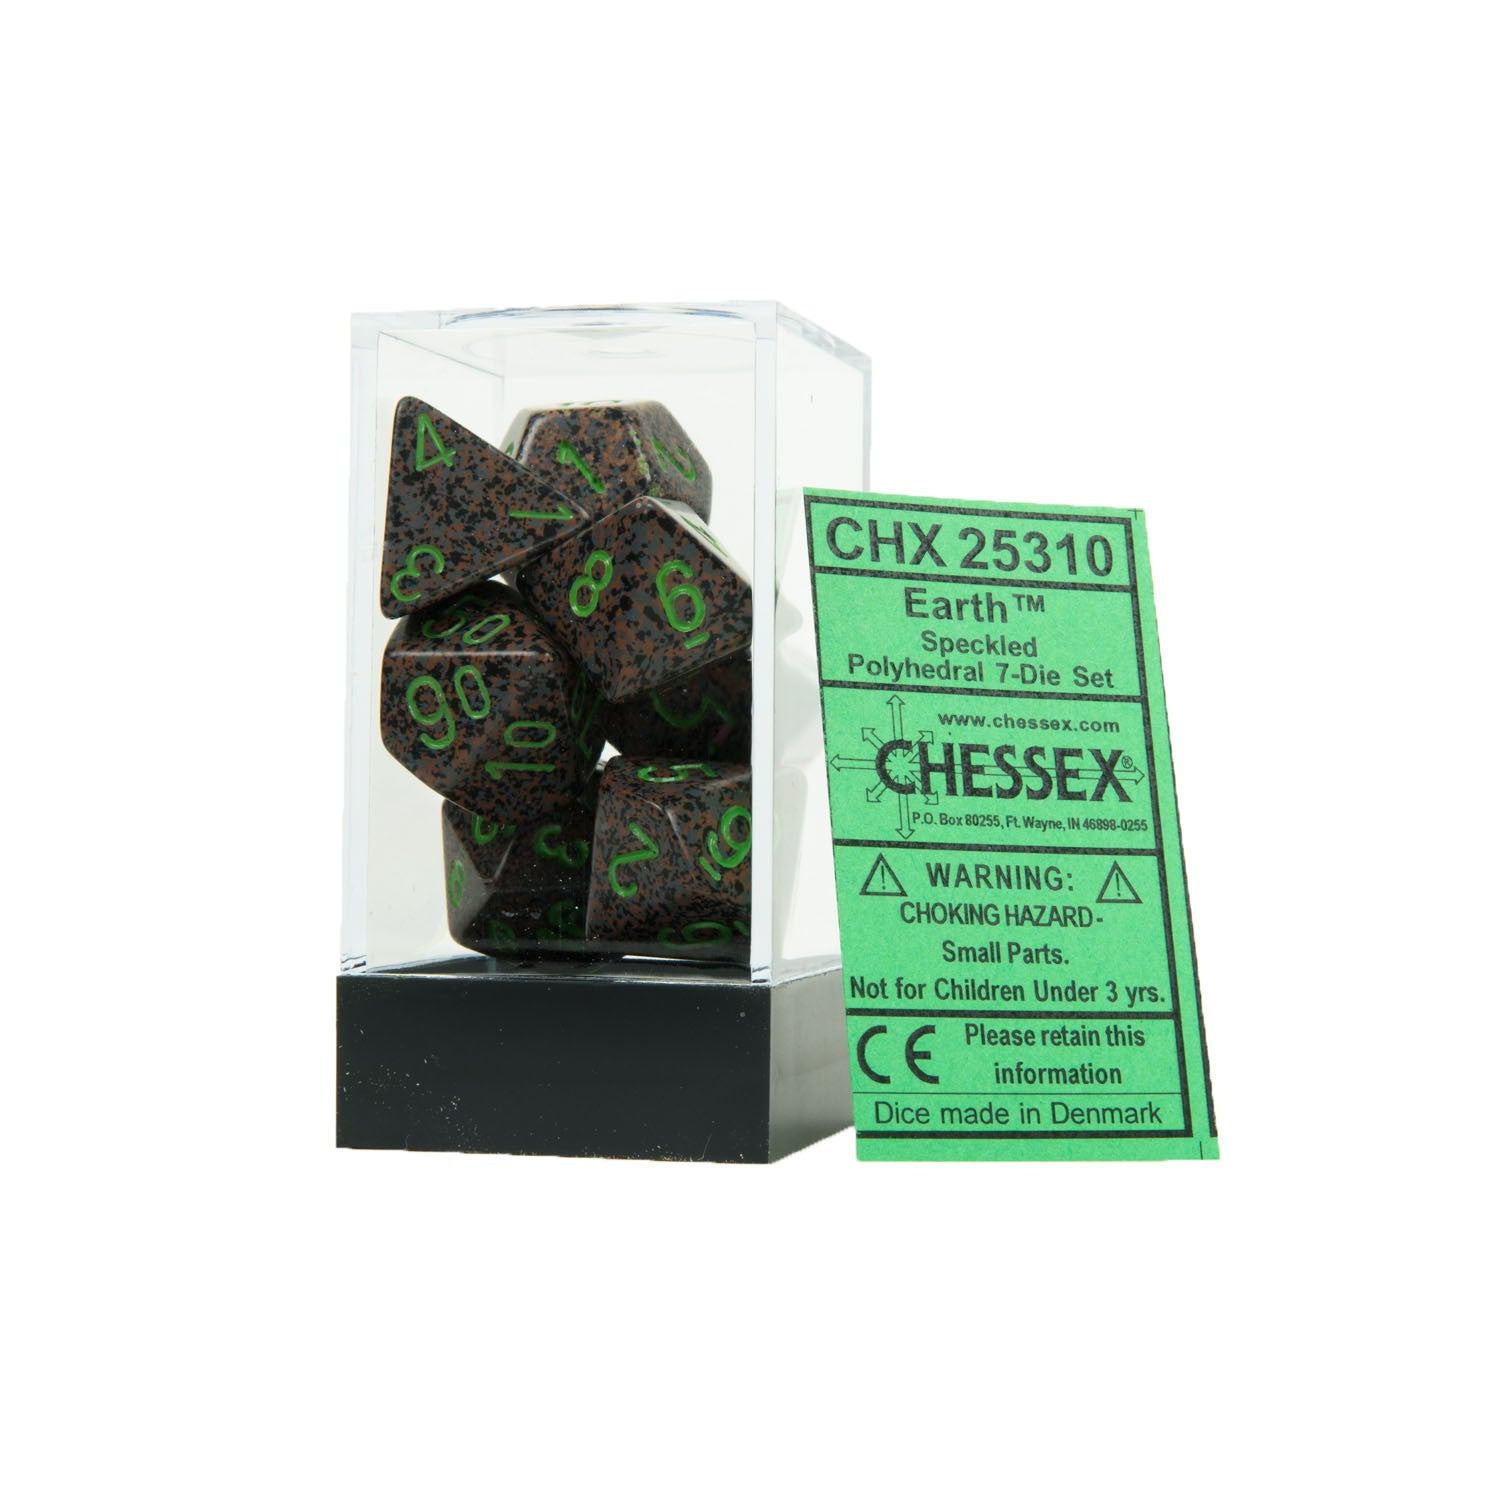 Chessex CHX25310 Earth™ Speckled Polyhedral Dice Set